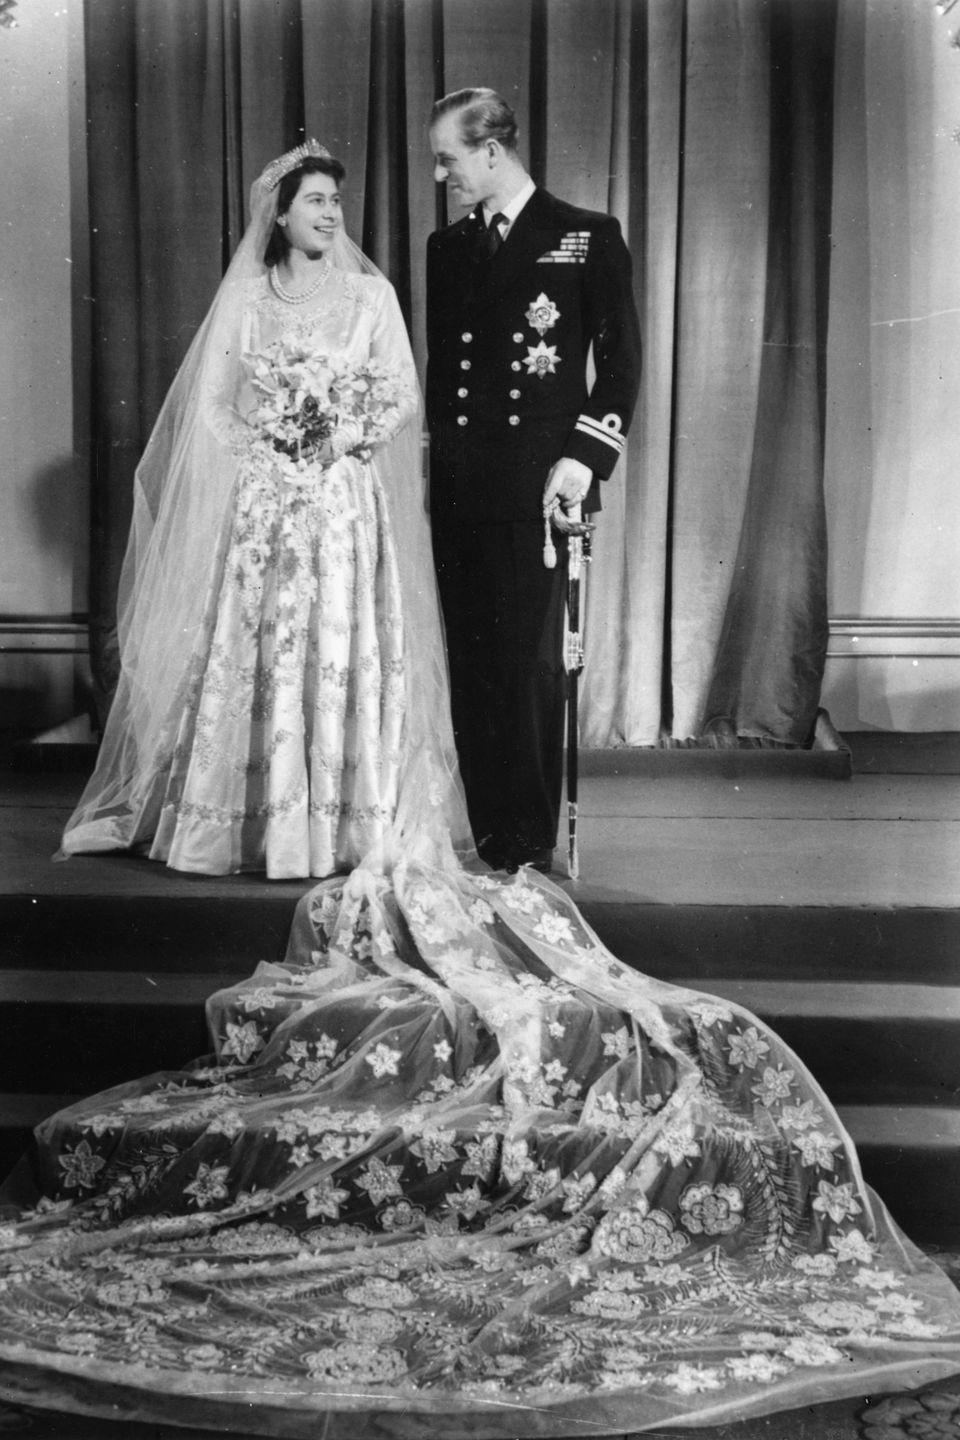 """<p>When Princess Elizabeth married Philip Mountbatten in 1947, she had to <a href=""""https://www.townandcountrymag.com/society/tradition/a13438510/queen-elizabeth-wedding-dress/"""" rel=""""nofollow noopener"""" target=""""_blank"""" data-ylk=""""slk:save up coupons to buy her dress"""" class=""""link rapid-noclick-resp"""">save up coupons to buy her dress</a>, as war rations were still in effect in the UK. That didn't stop the royal from looking stunning in a ivory silk and pearl gown. The couple was married in Westminster Abbey and have been married for 72 years now. </p>"""